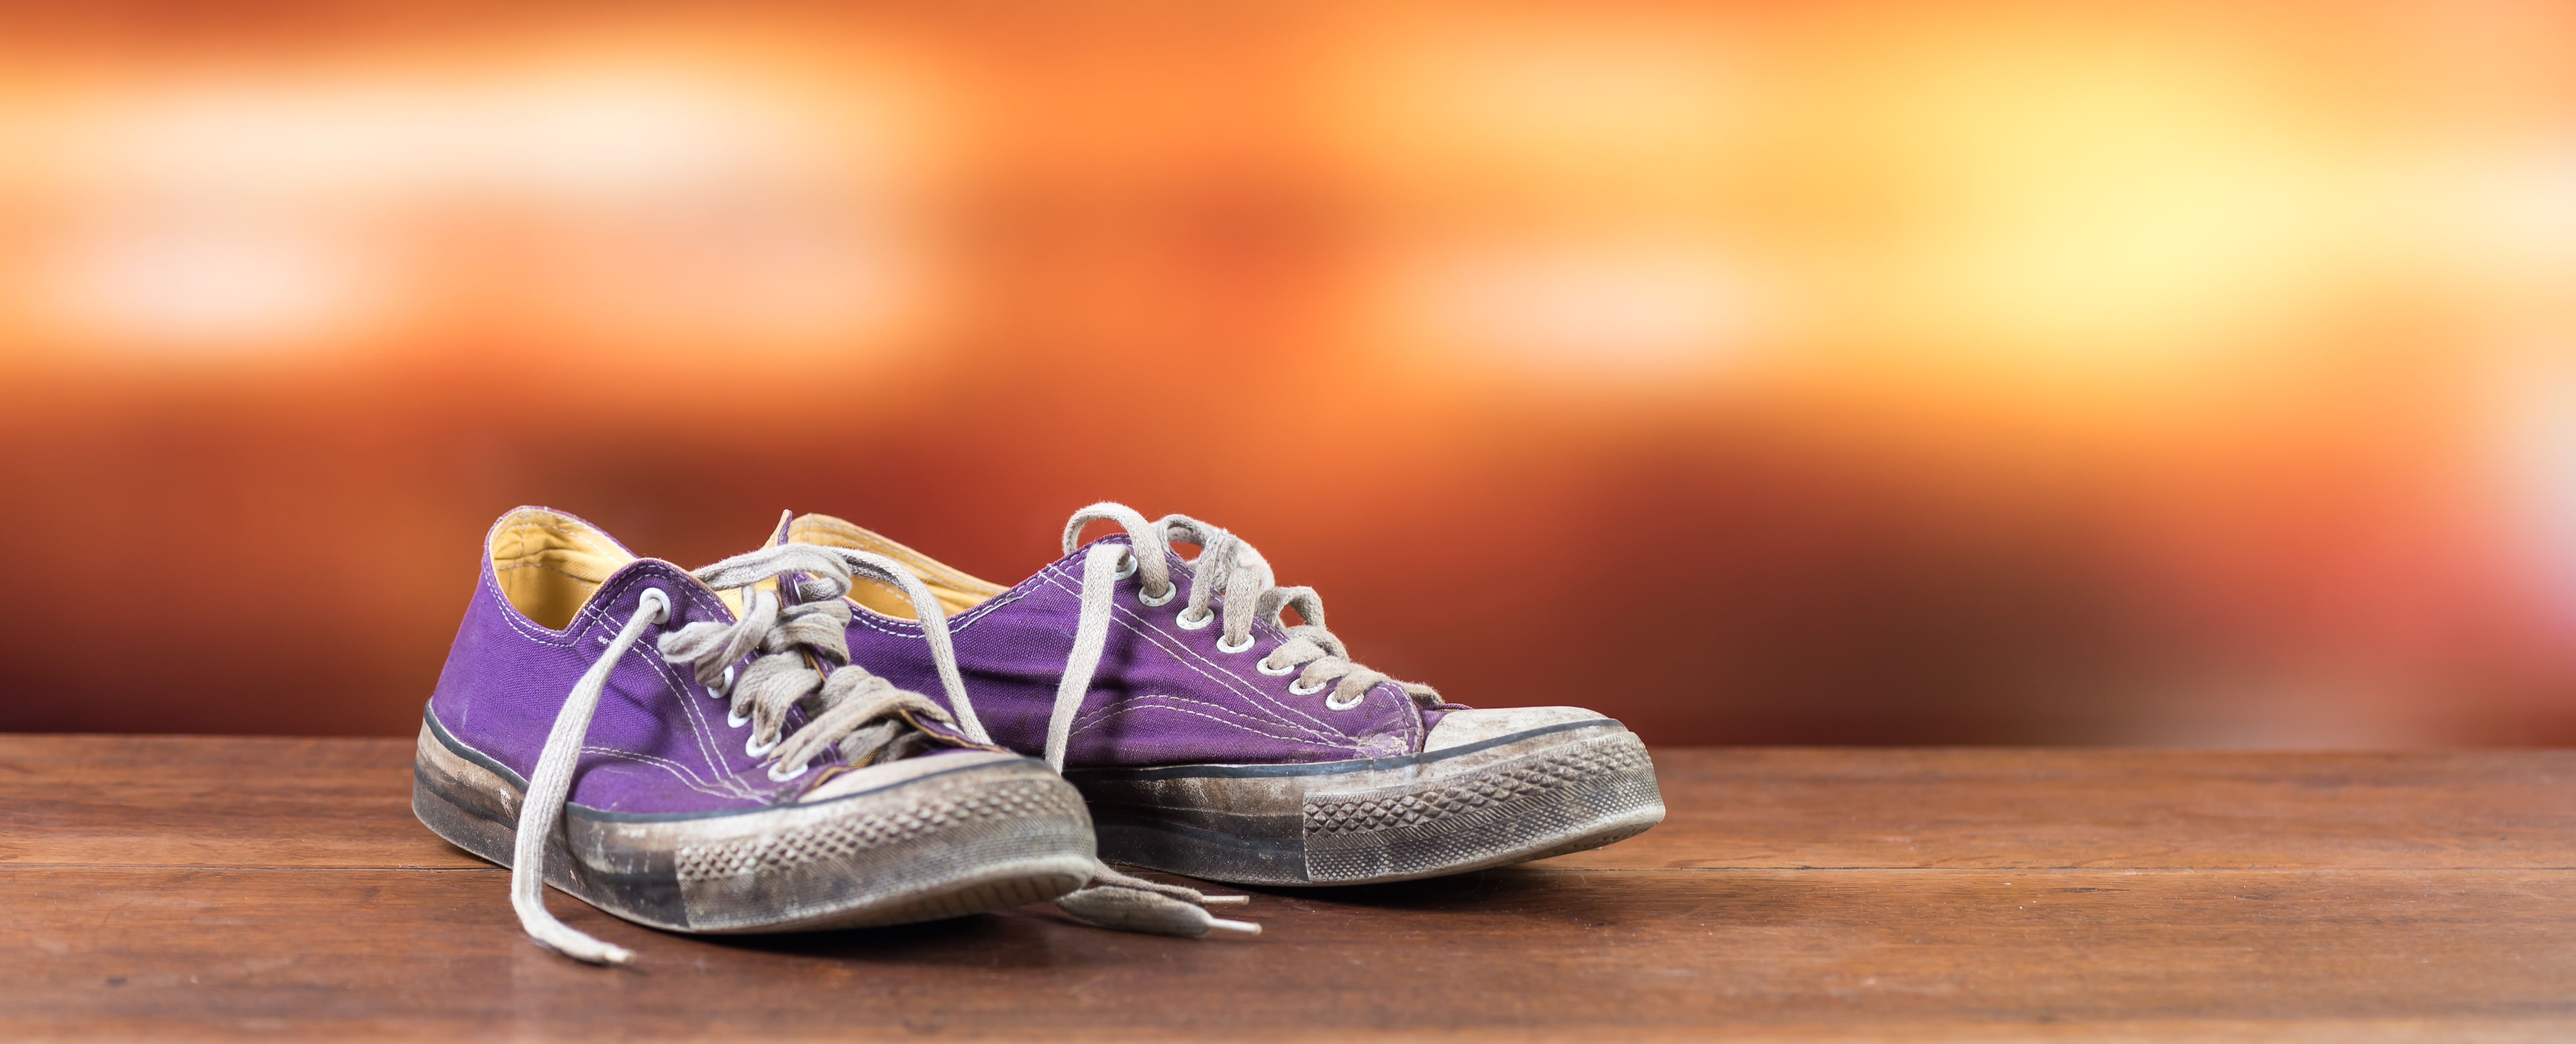 Old used purple sneakers on blurred background